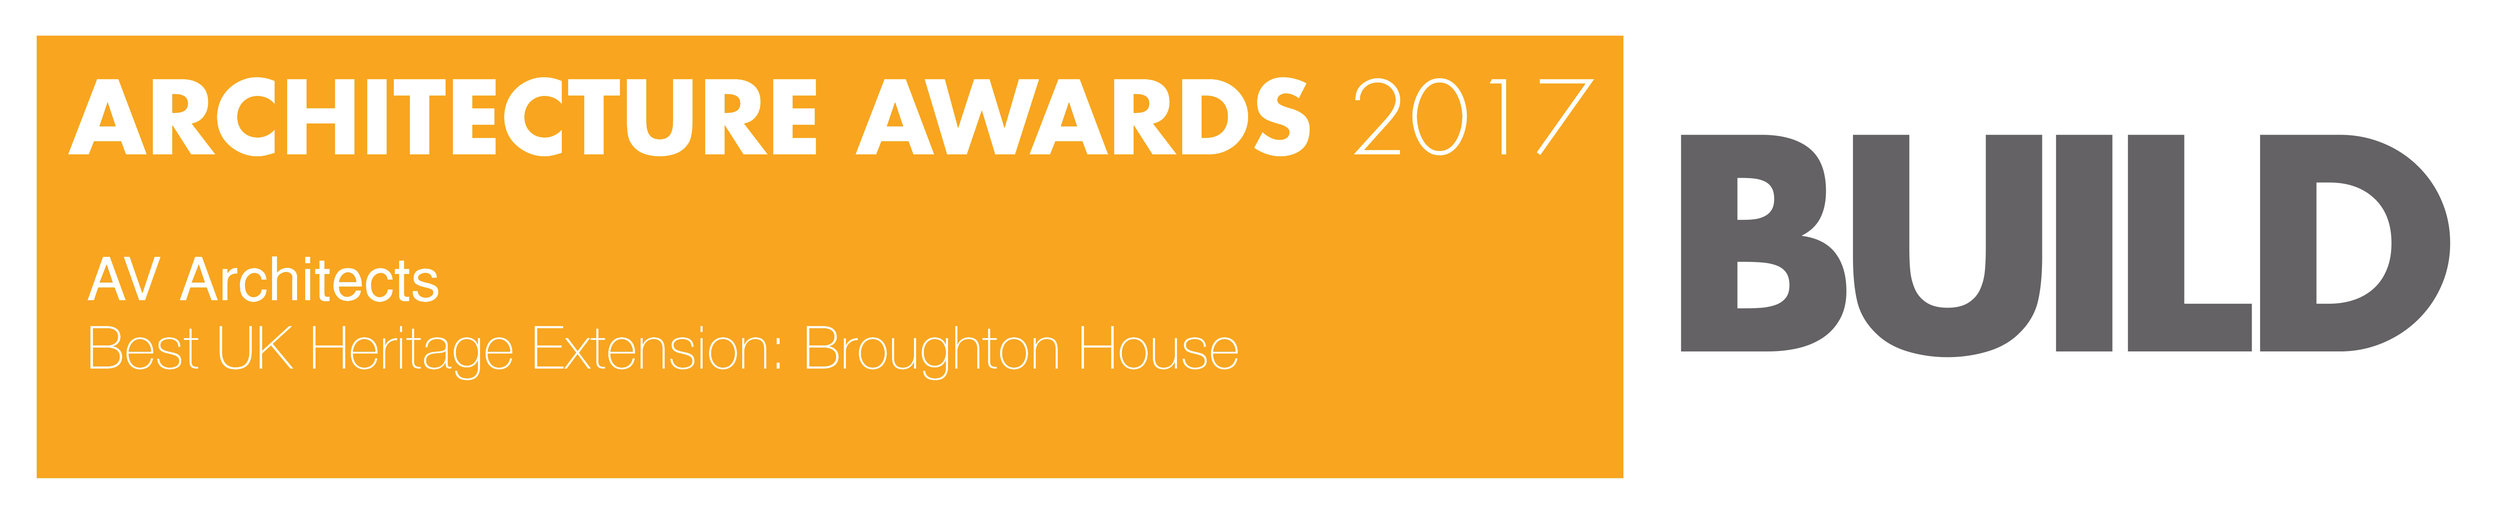 Oragne-Best UK Heritage Extension Broughton House-Architecture Winners Logo.jpg